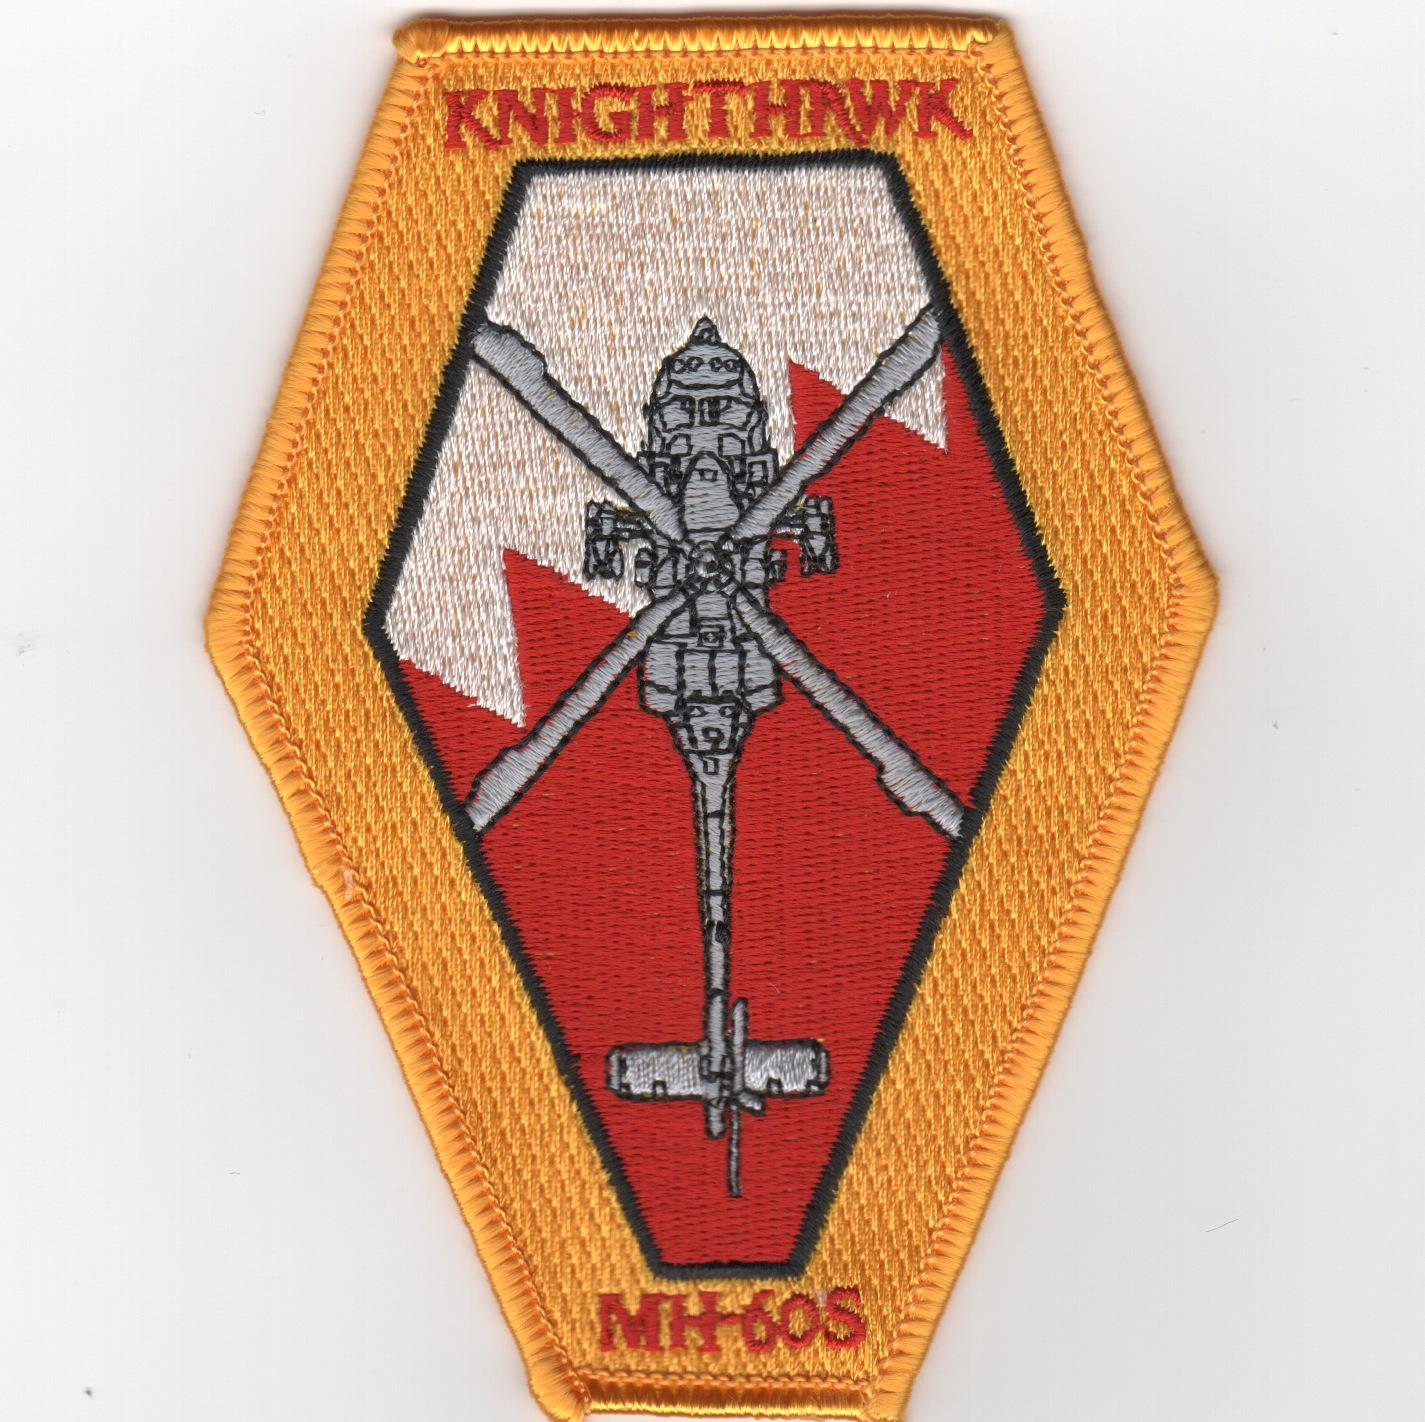 MH-60S 'Knighthawks' Coffin Patch